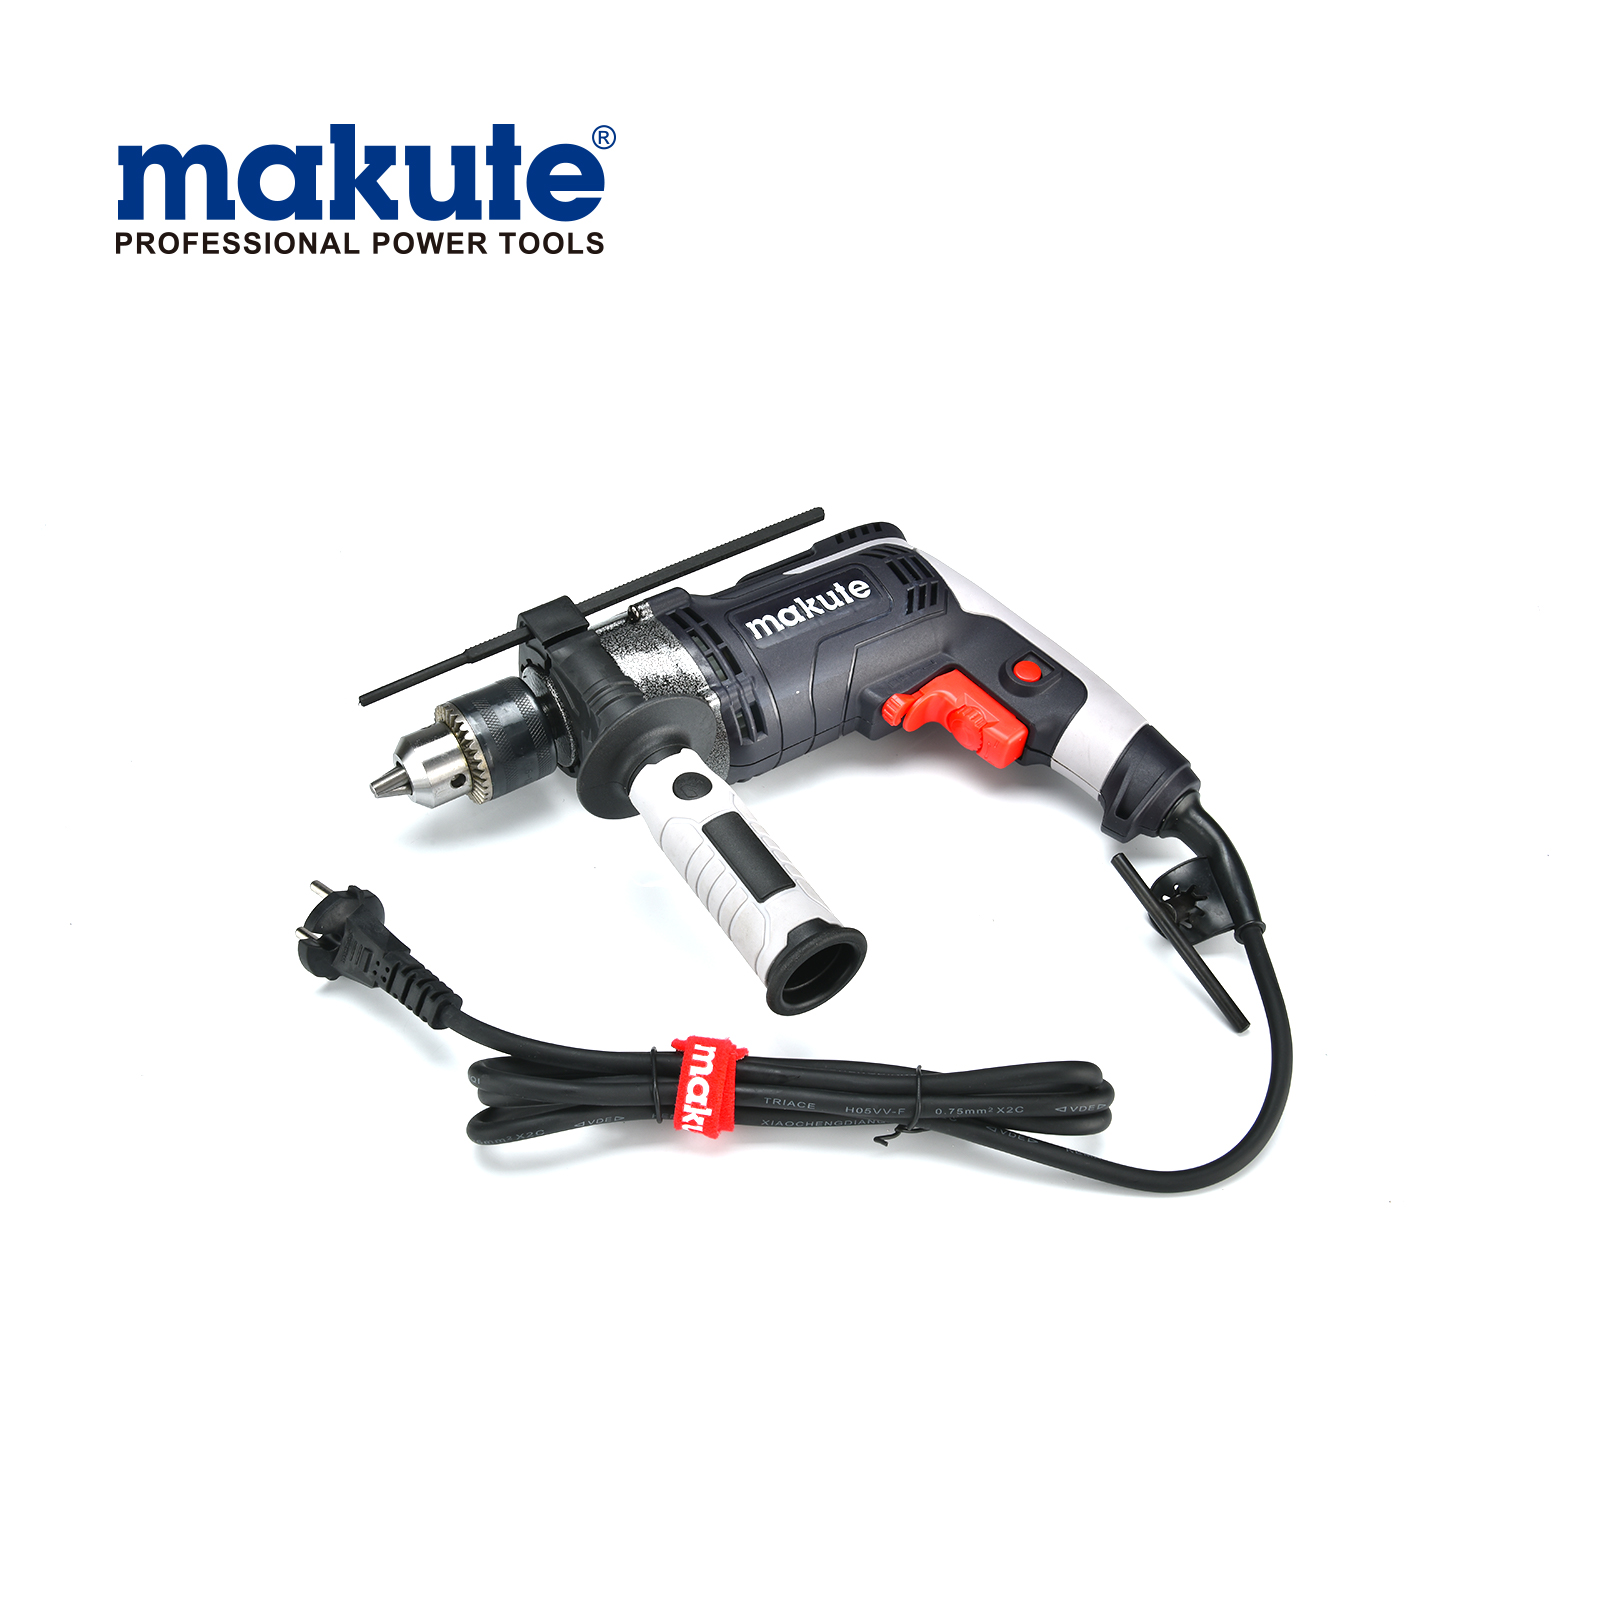 MAKUTE Mini 780w 13mm new design professional power tools rotary Electric Drill